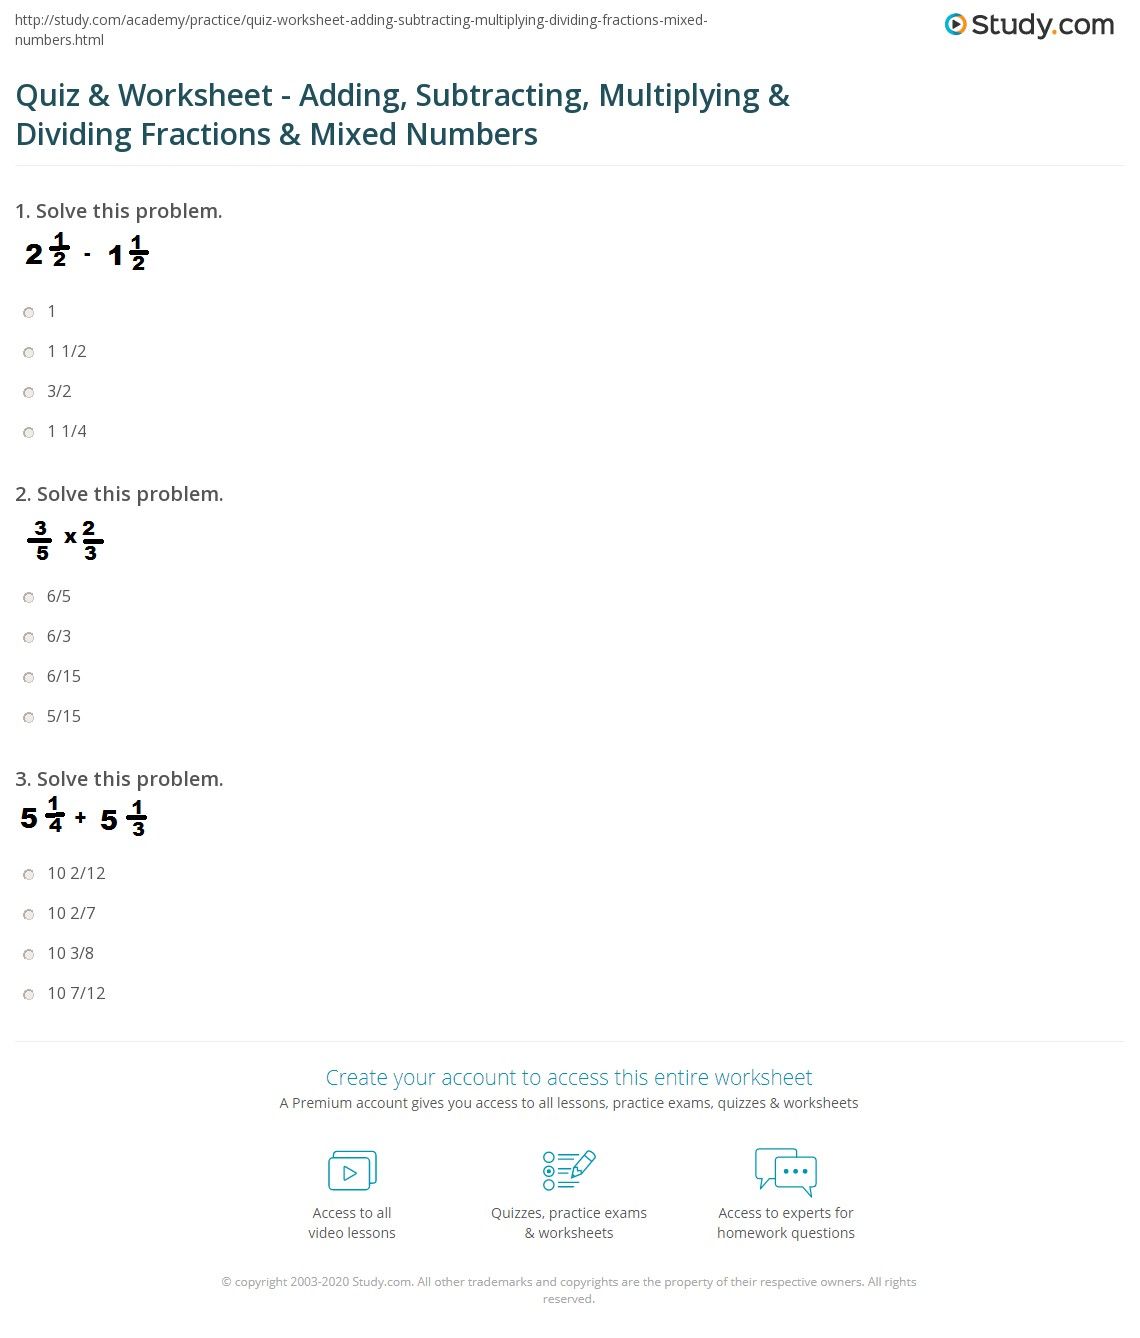 worksheet Adding Fractions Problems quiz worksheet adding subtracting multiplying dividing print add subtract multiply divide fractions mixed numbers worksheet